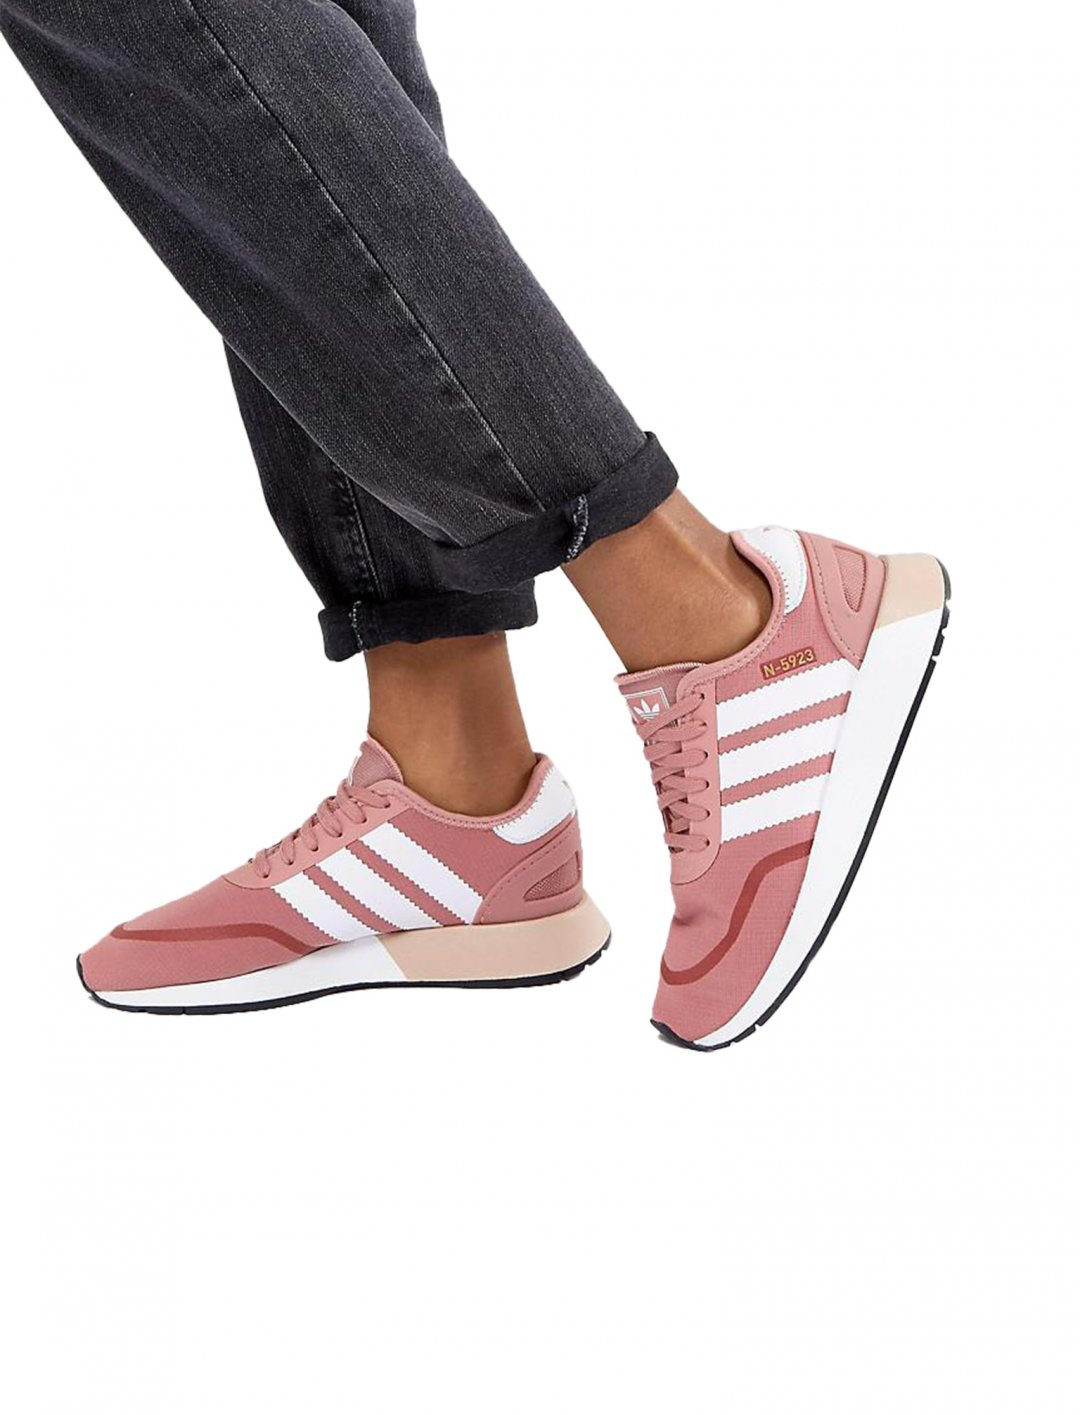 "Adidas Pink Trainers {""id"":12,""product_section_id"":1,""name"":""Shoes"",""order"":12} Adidas Orginals"